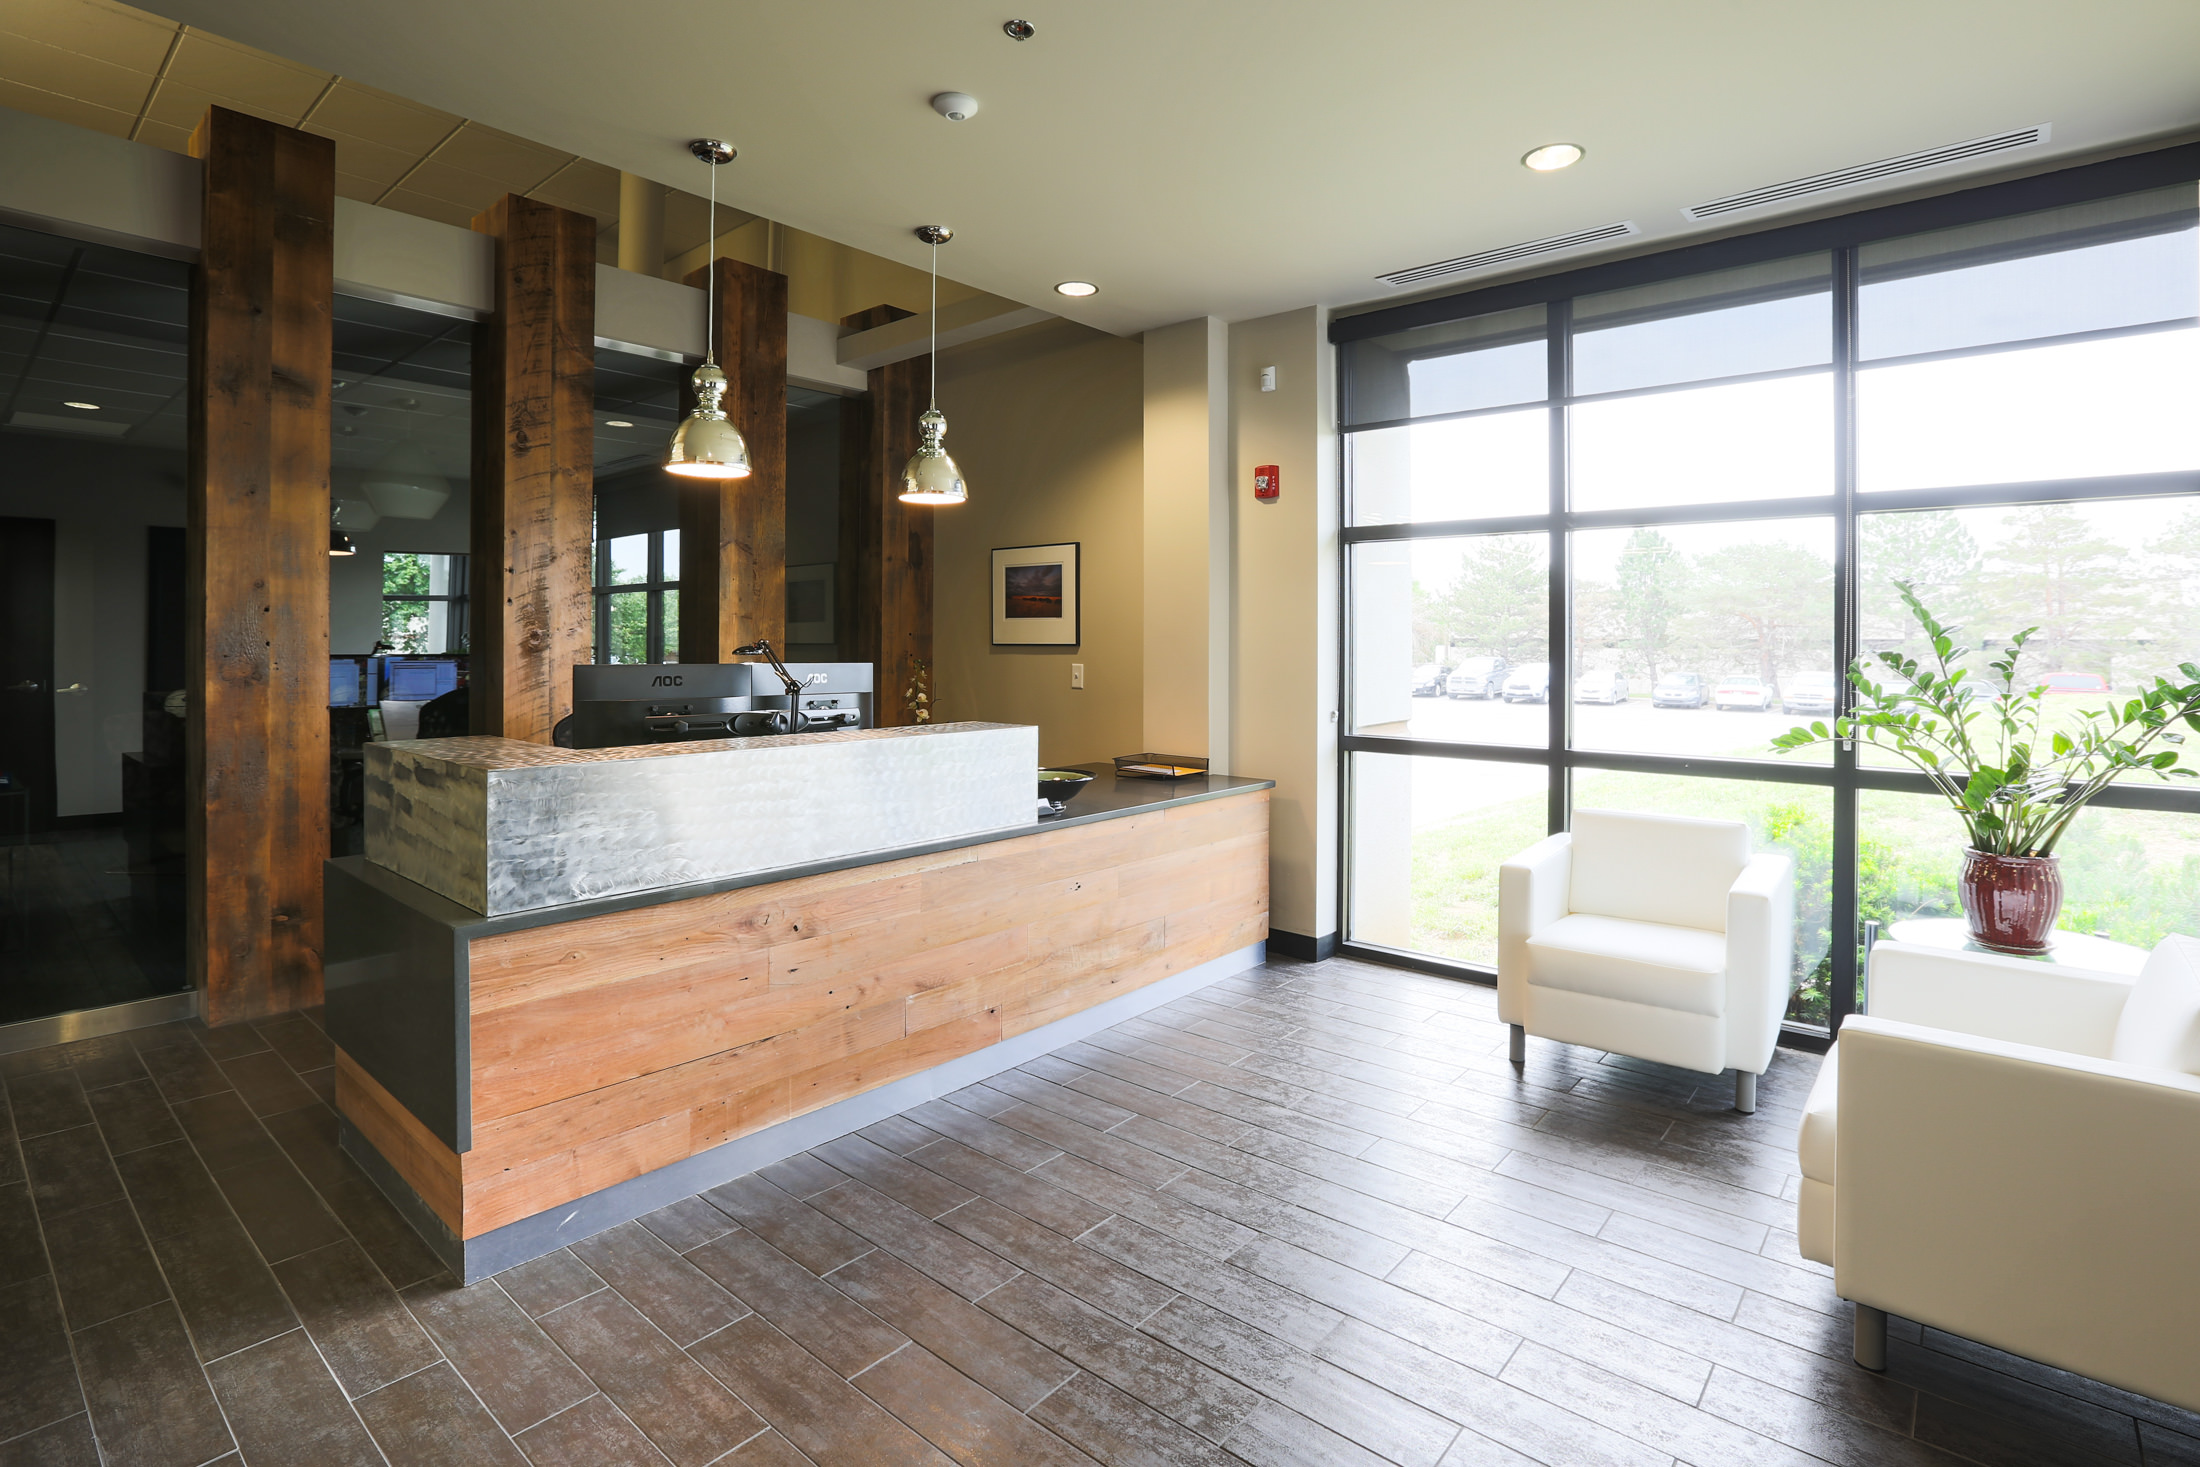 Brushed metal and reclaimed wood make a bold statement in the lobby of Power Source's newly-remodeled office and warehouse space in Lenexa, KS